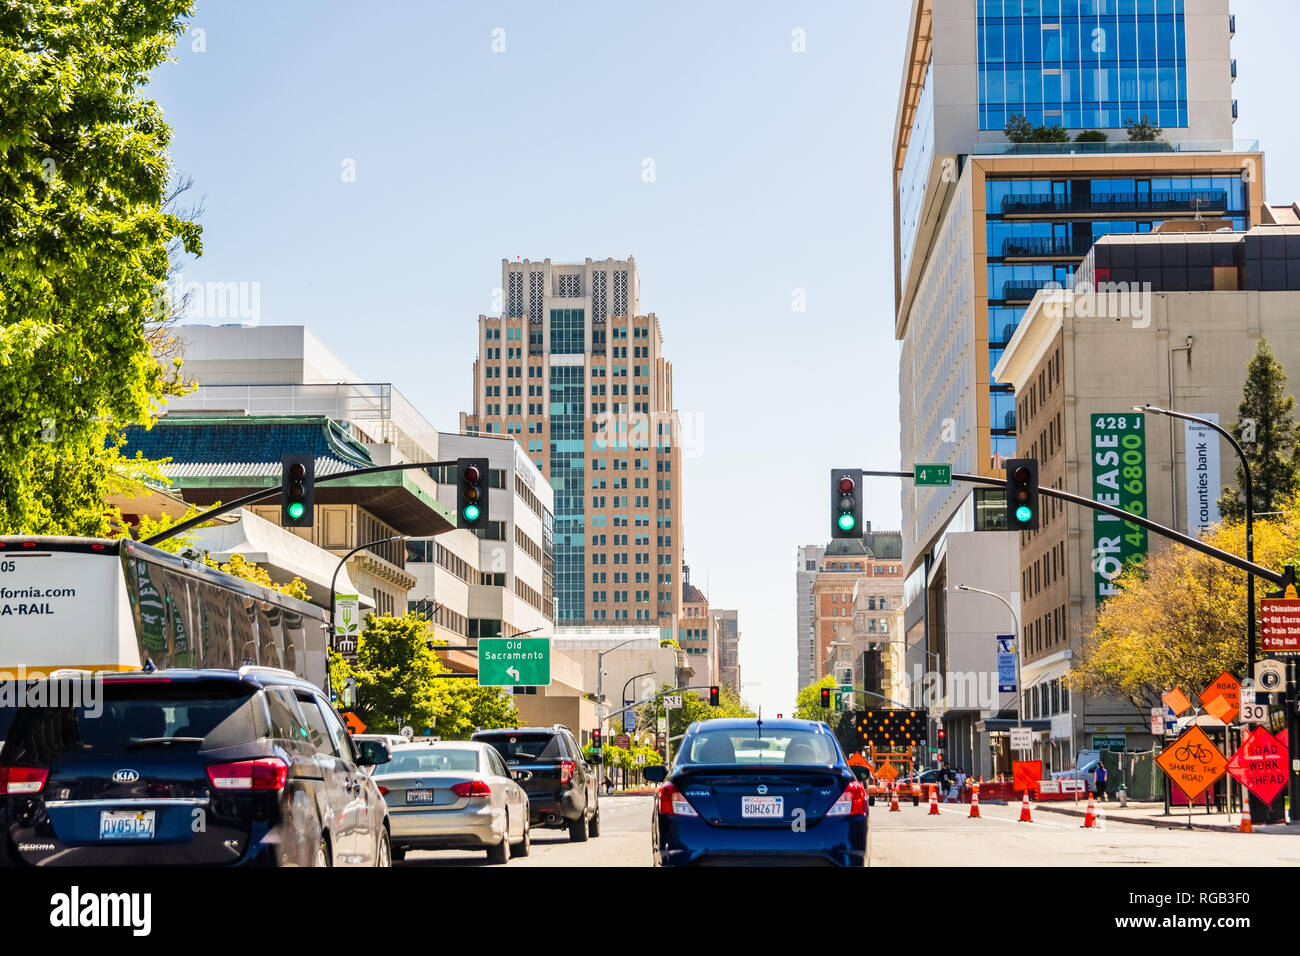 April 14, 2018 Sacramento / CA / USA - Driving through the downtown area on a busy day - Stock Image